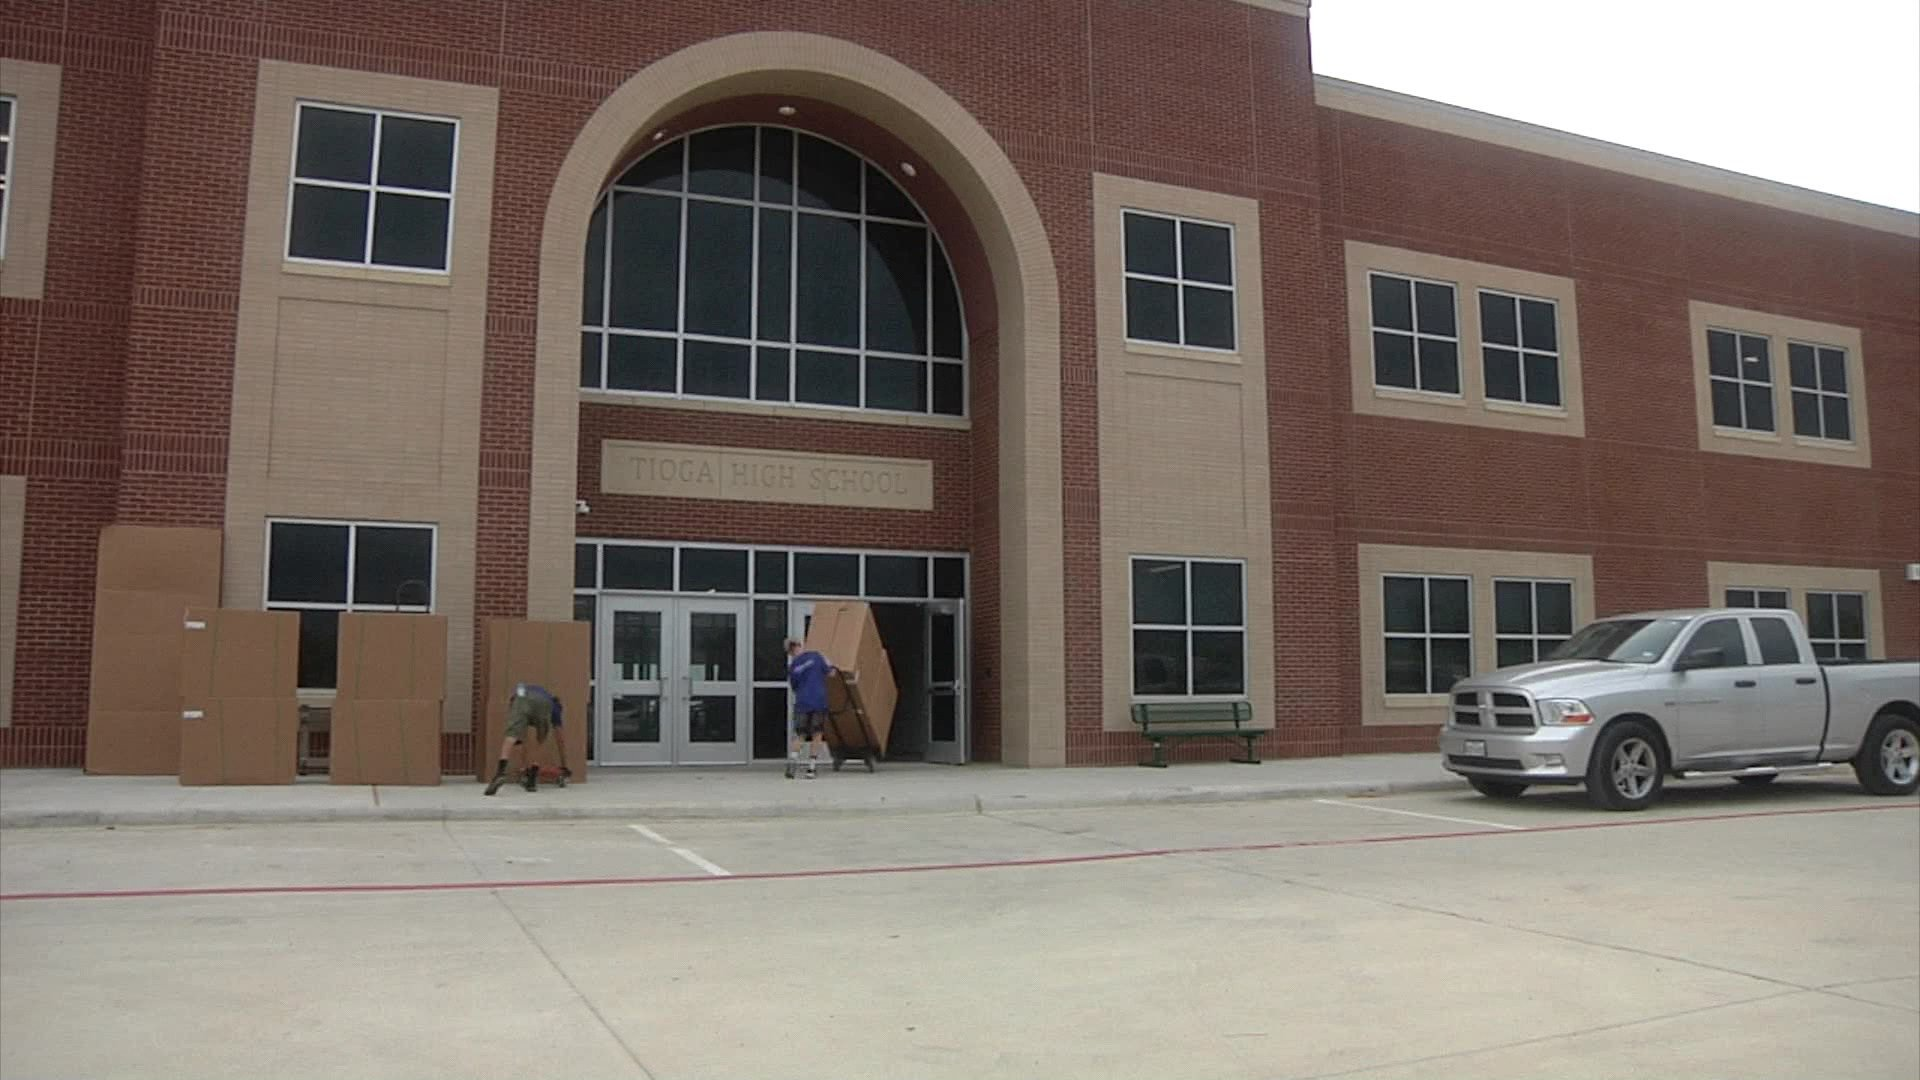 The new Tioga High School opens for students on August 15, 2018. (KTEN)